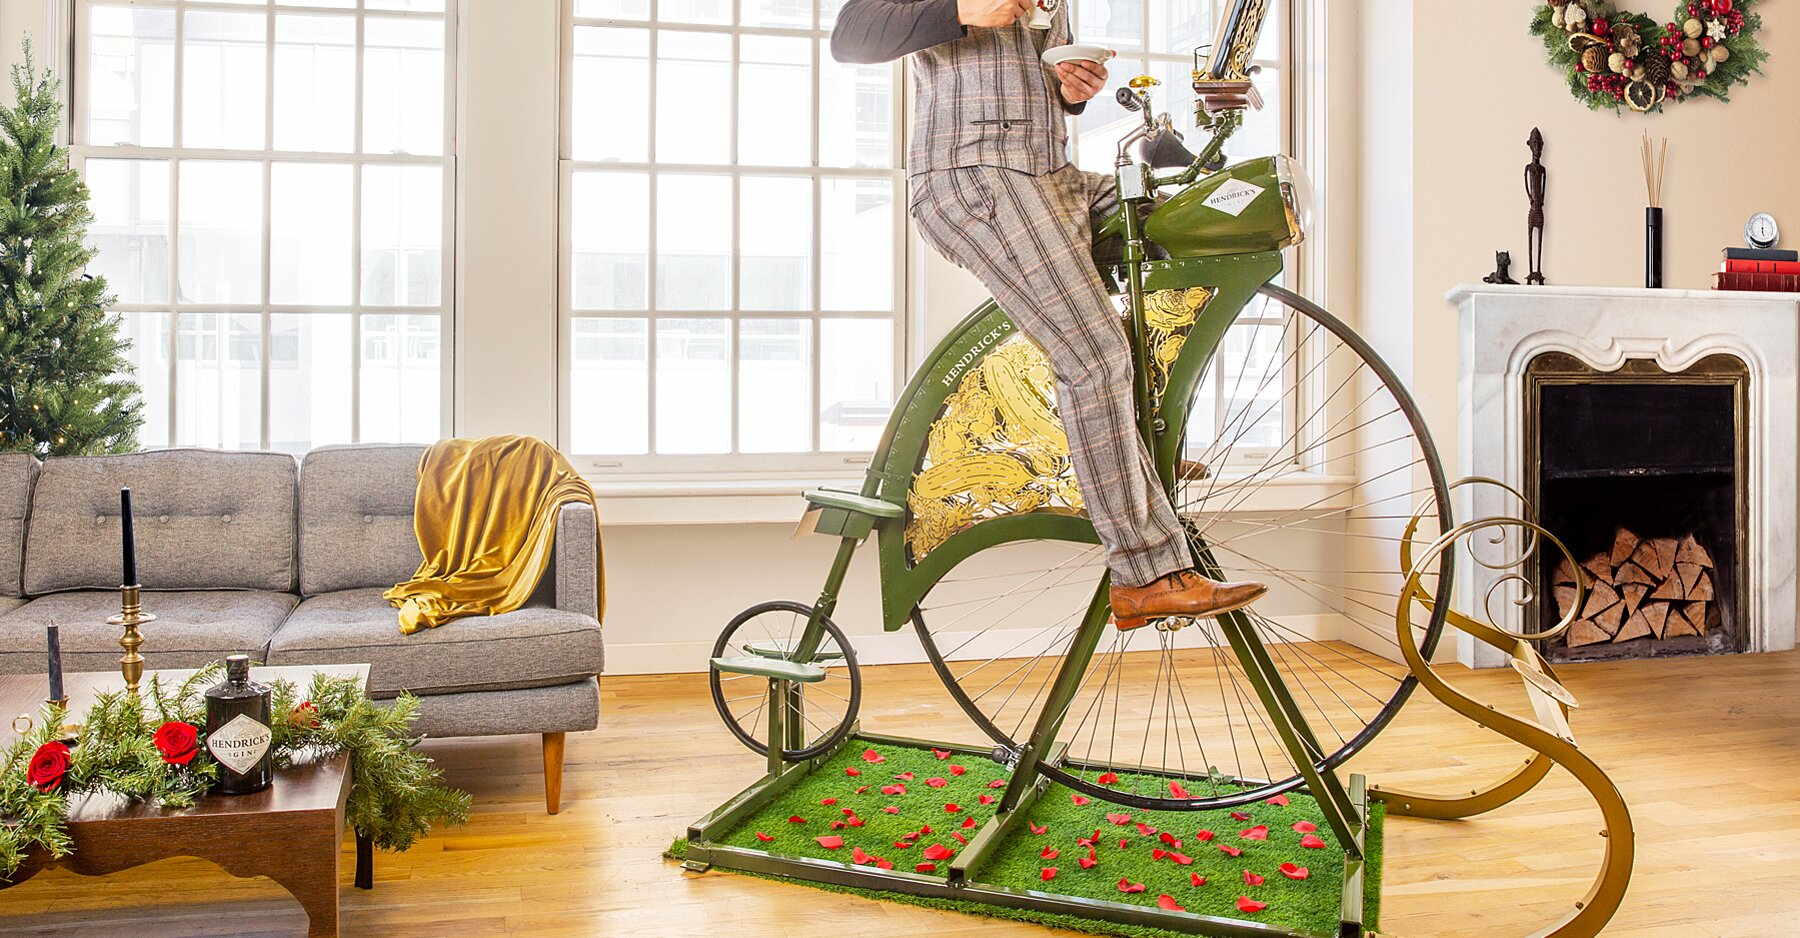 Hendrick's Gin Just Released An Exercise Bike So You Can Pedal For Cocktails photo